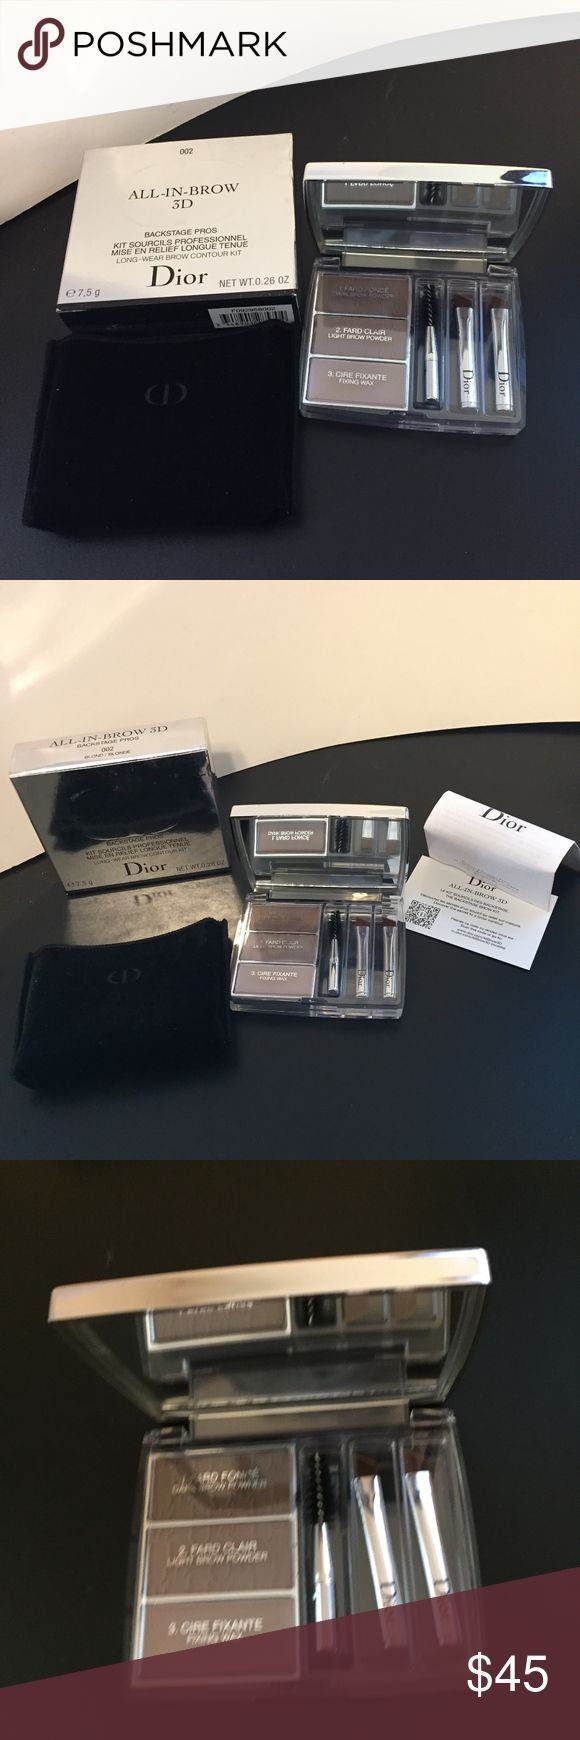 Dior All in brow3D 002 LongWear Brow Contour Kit Authentic brand new in box Dior Allinbrow Dior All in brow3D 002 LongWear Brow Contour Kit Authentic brand new in box Dio...